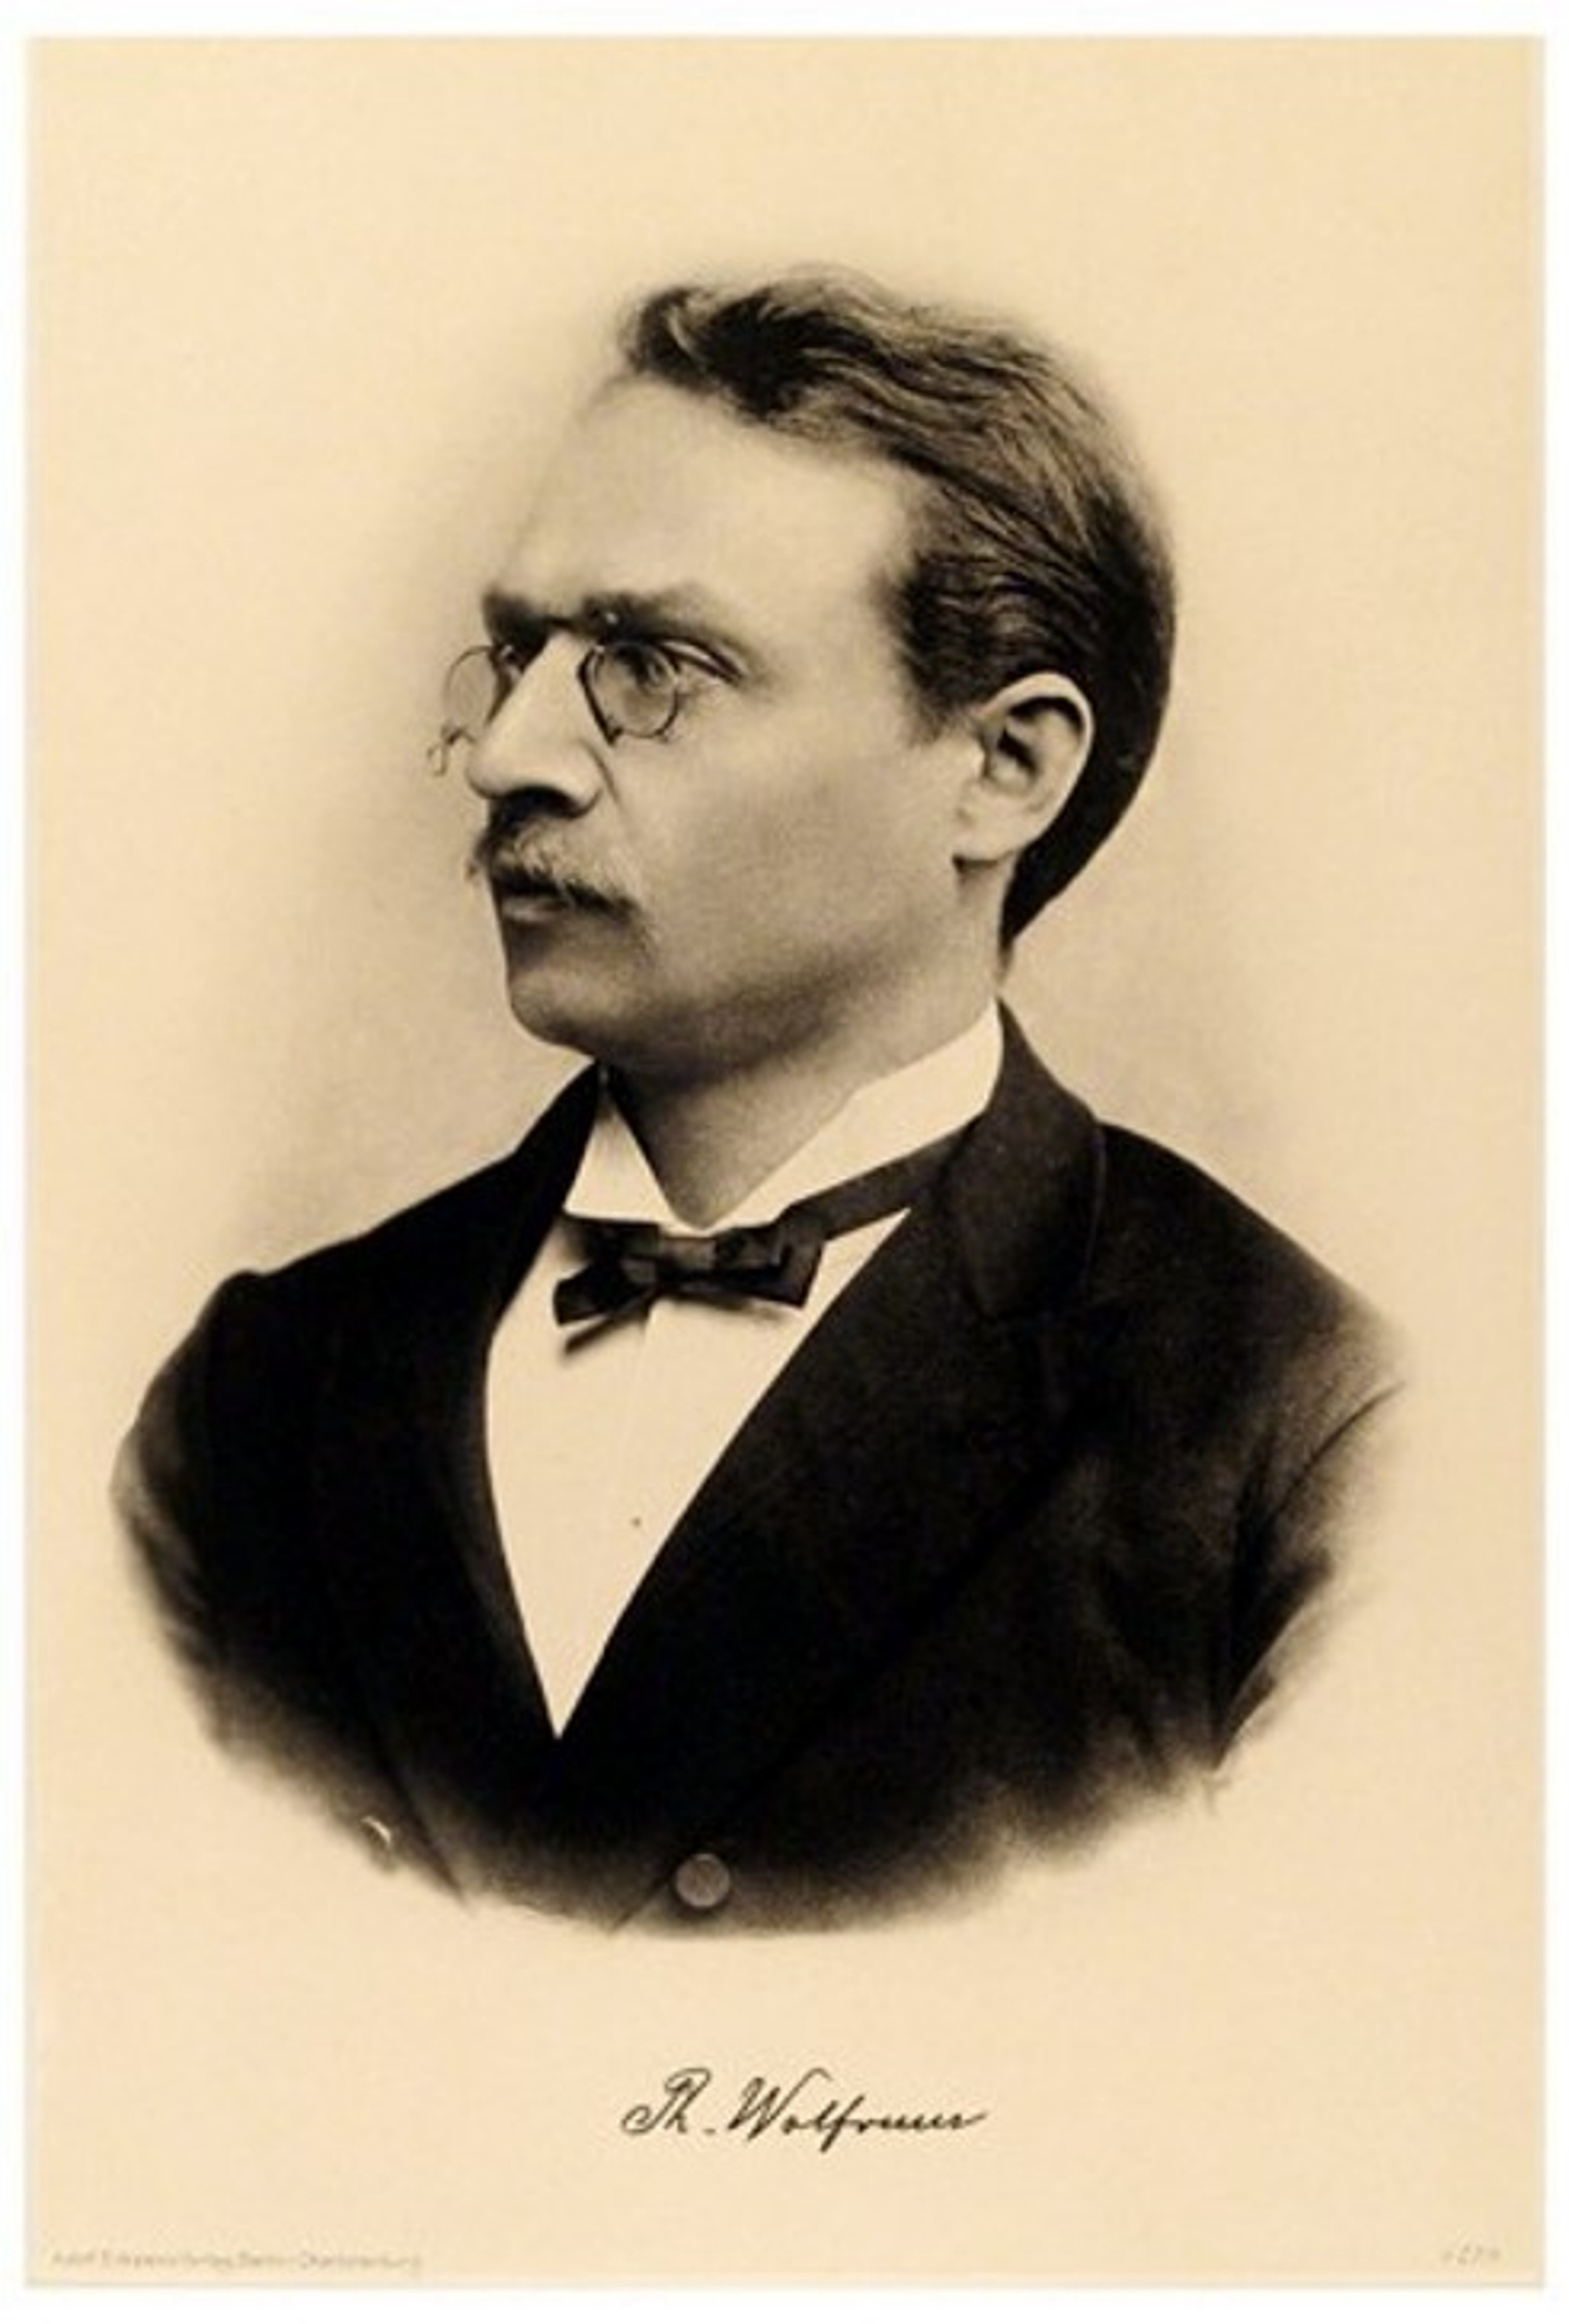 Philipp Wolfrum (1854-1919)